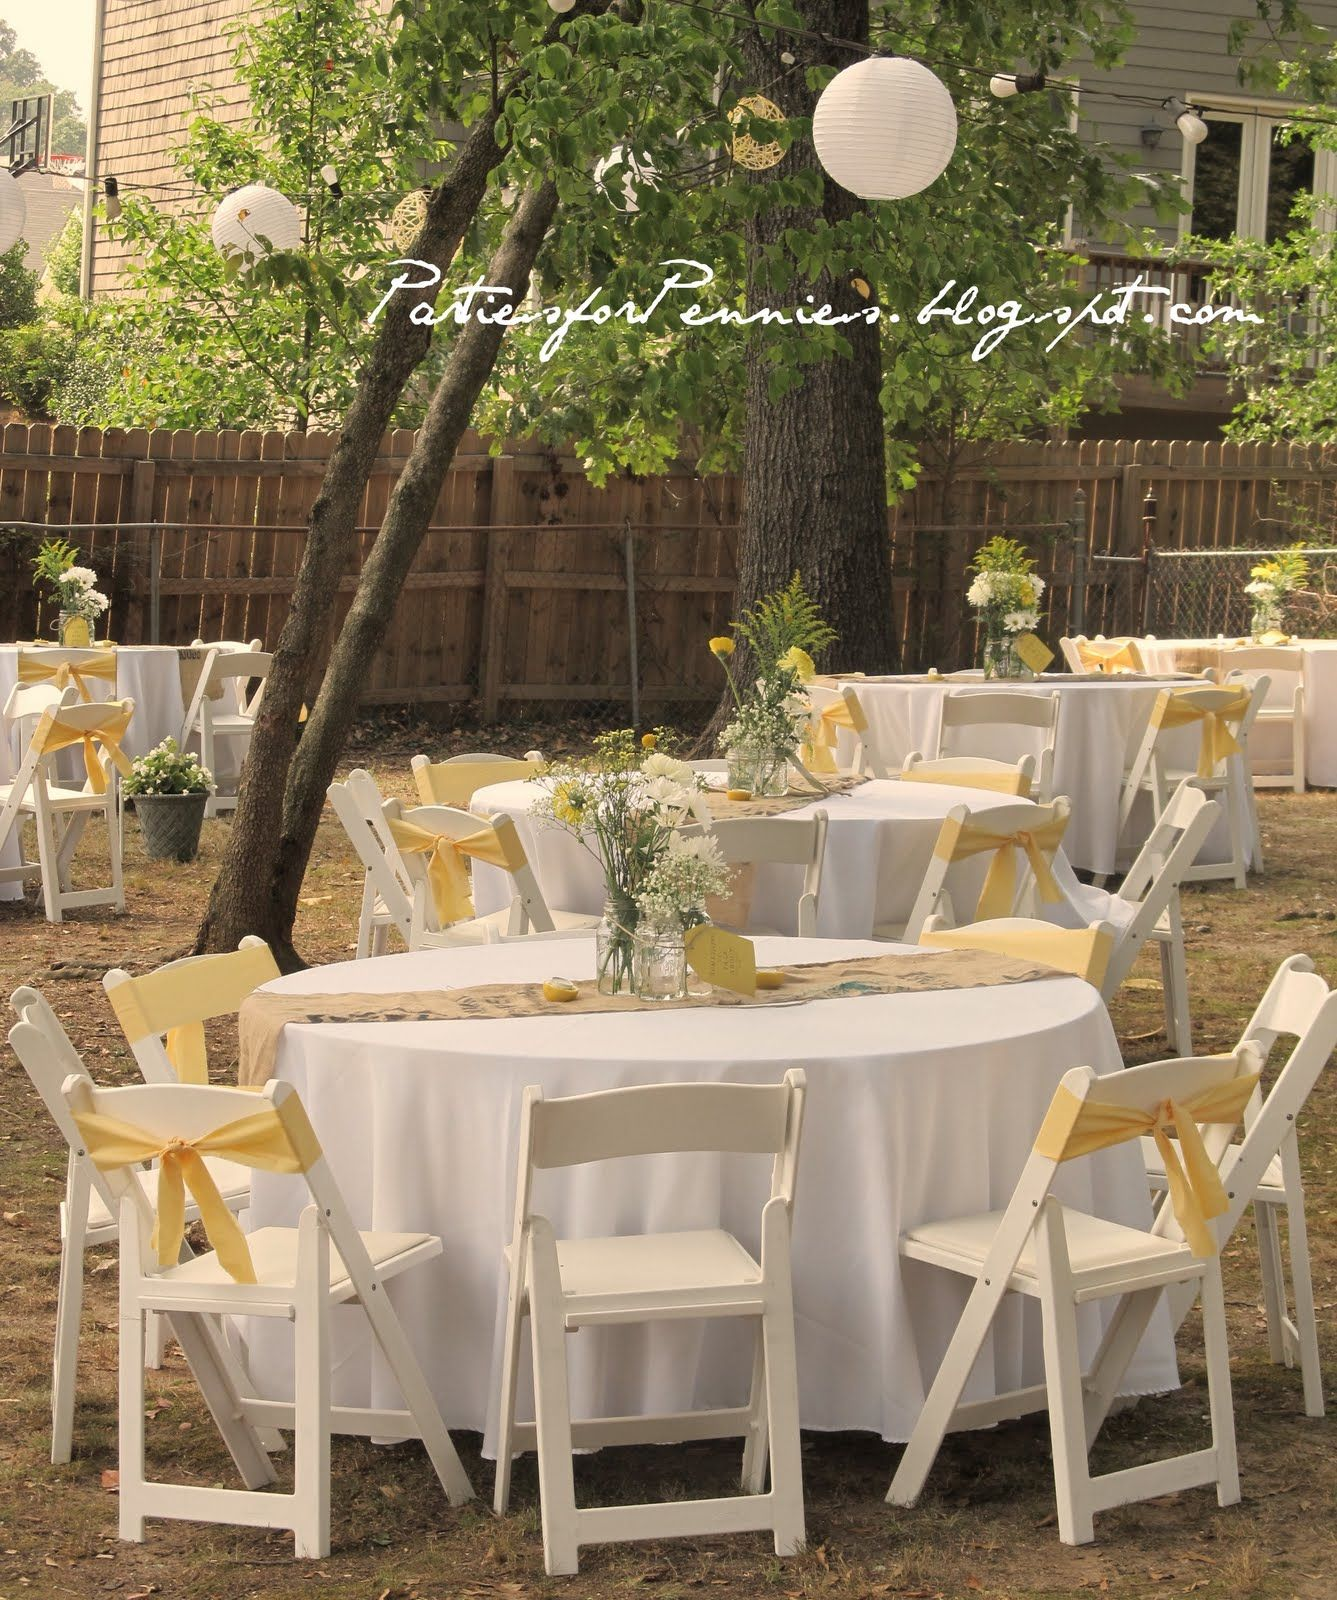 Garden Wedding Tips For A Beautiful Wedding: Backyard Wedding Reception By PartiesforPennies.com